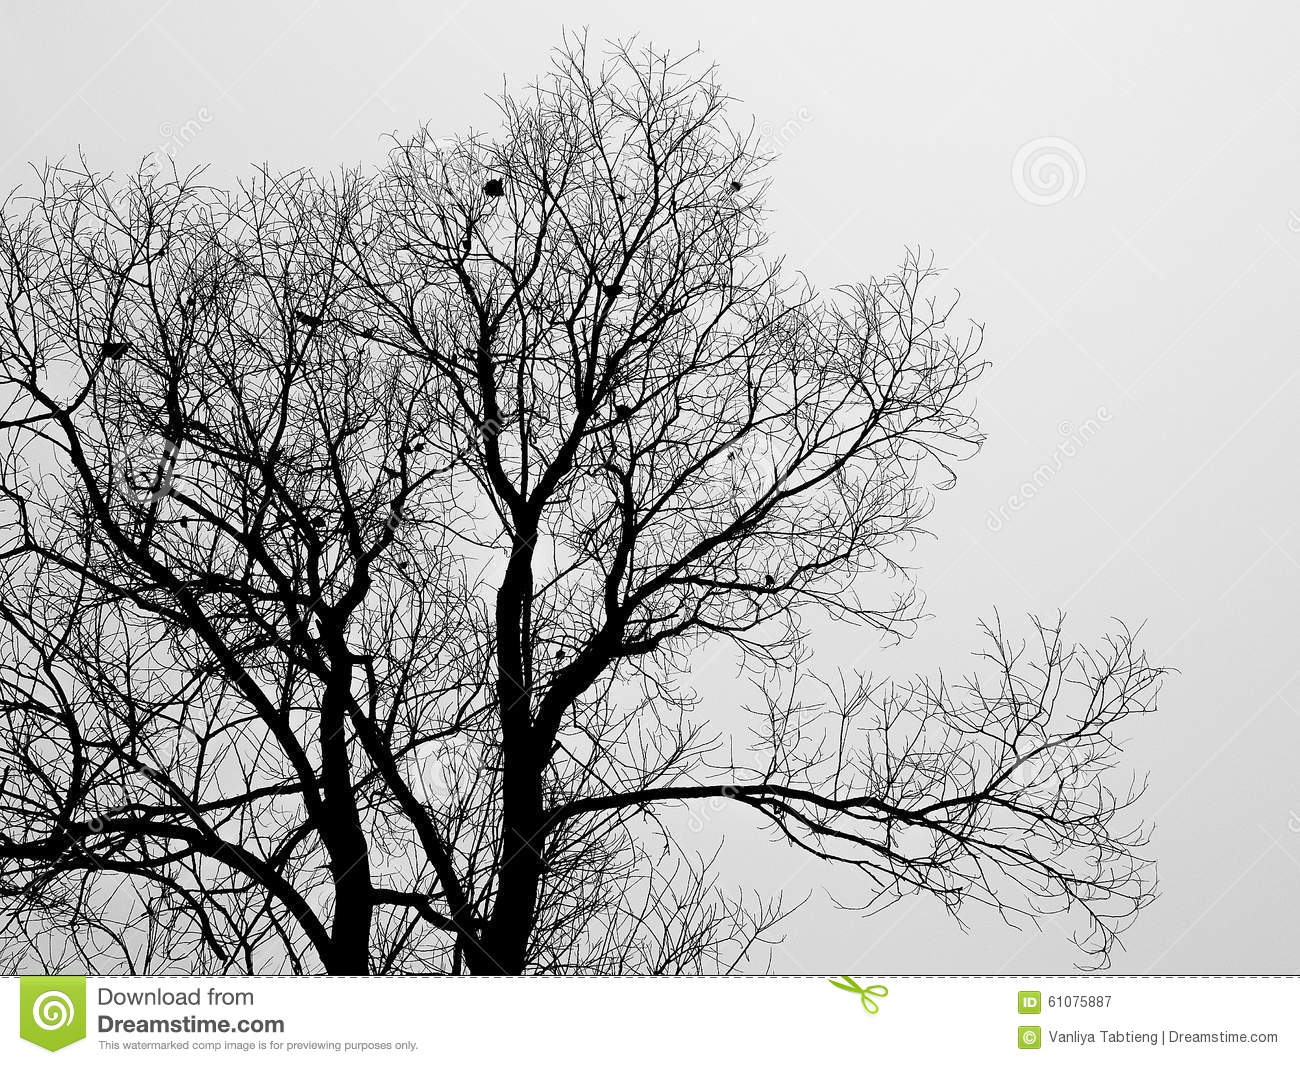 Silhouette branch of bald tree in the white fog in winter